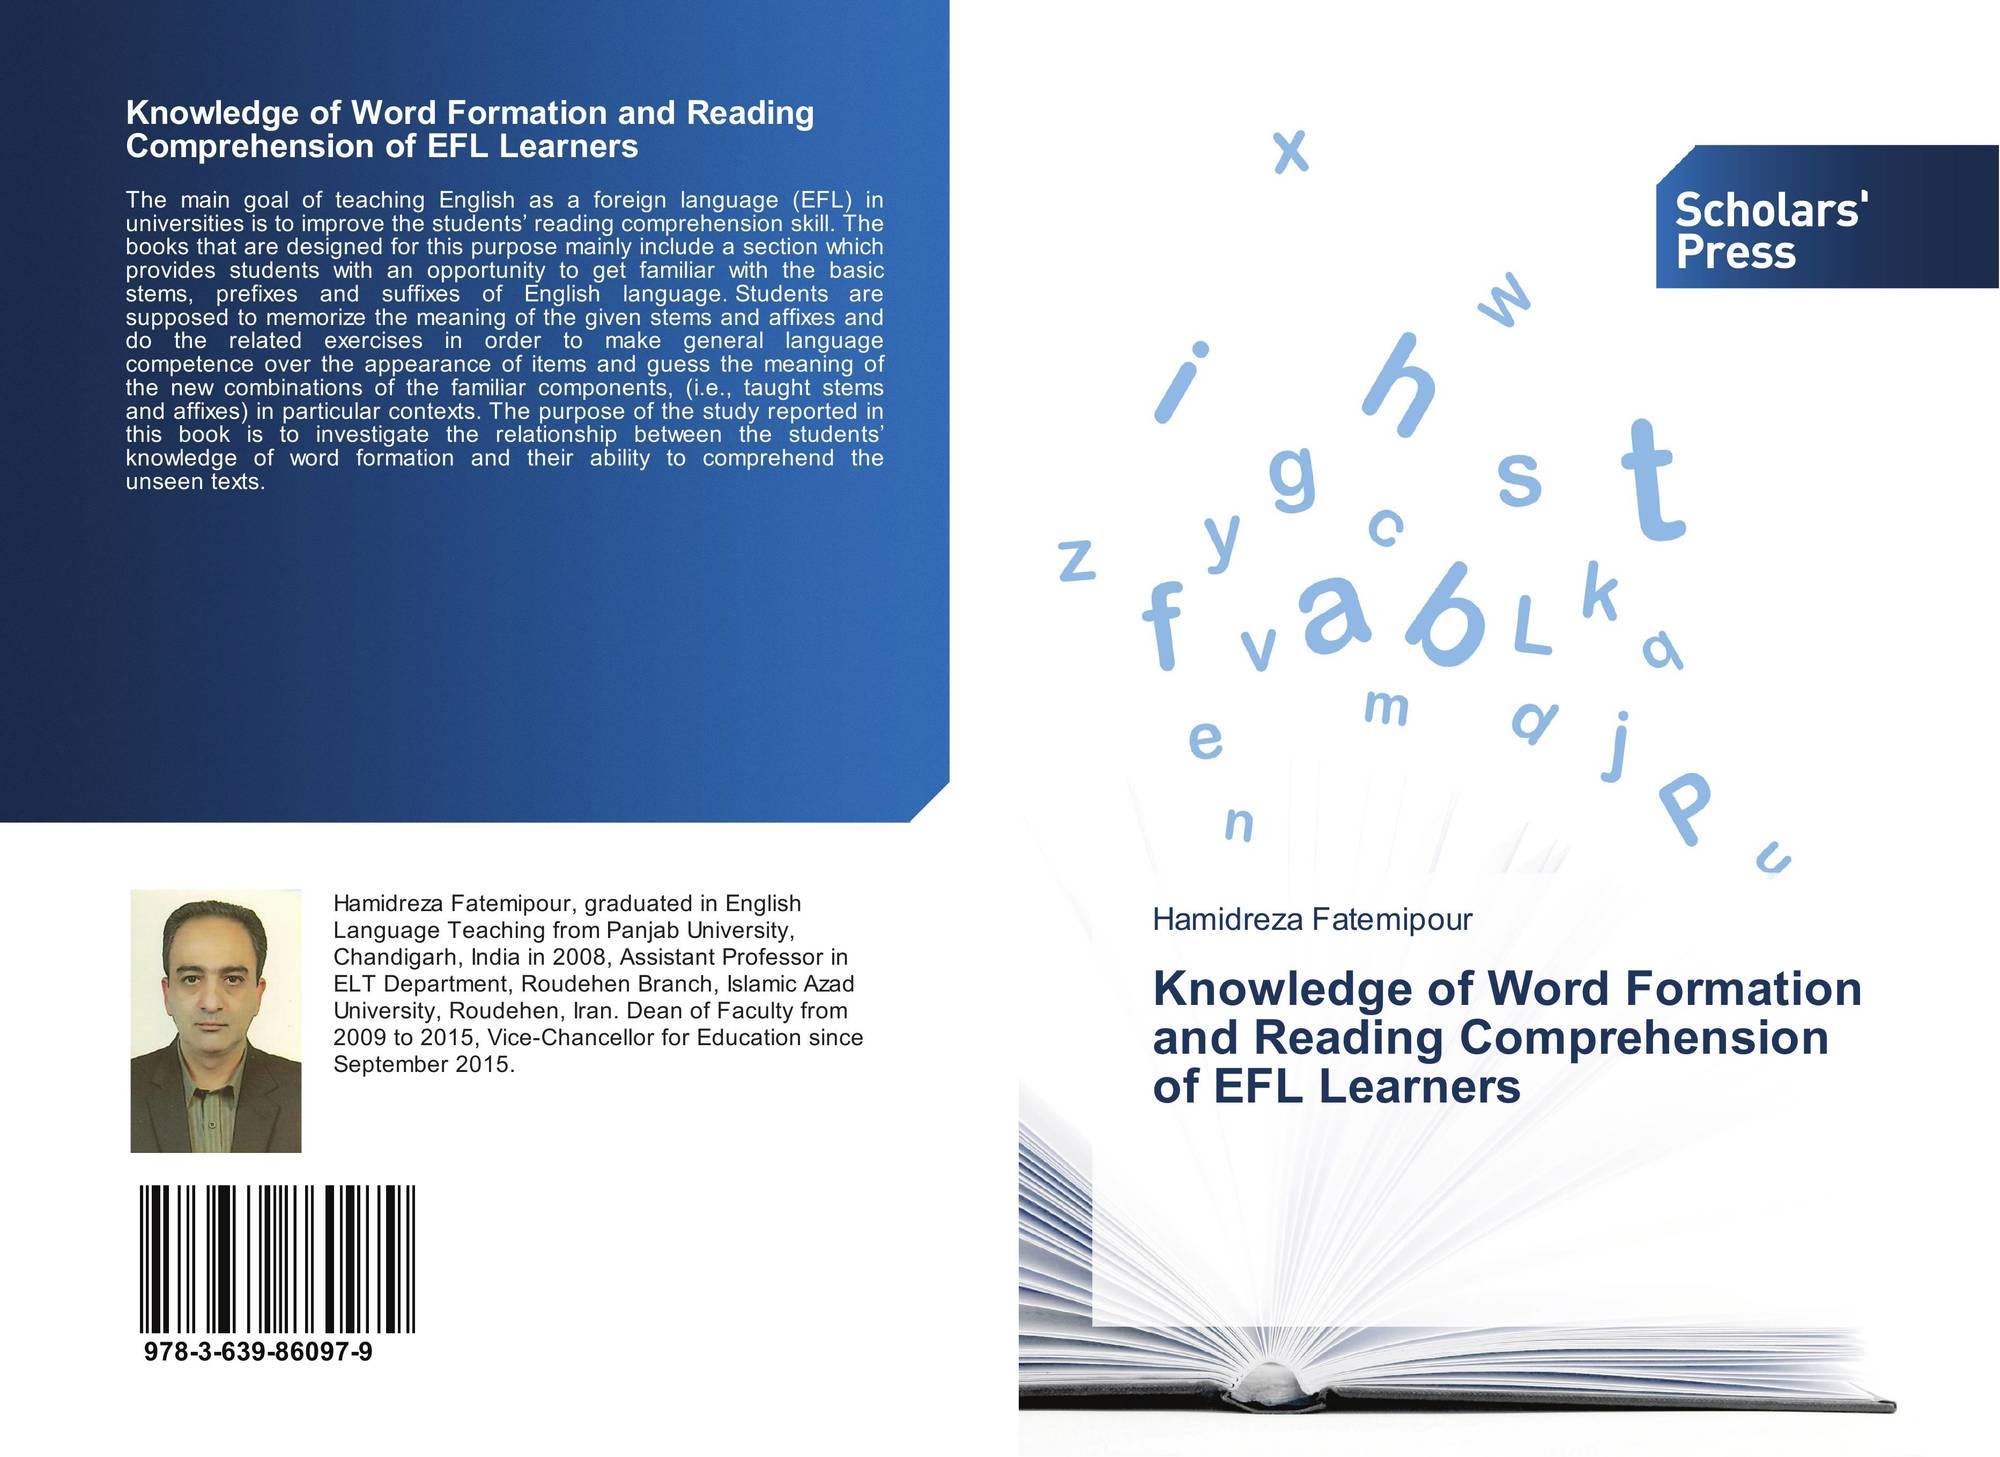 Knowledge Of Word Formation And Reading Comprehension Of Efl Learners 978 3 639 9